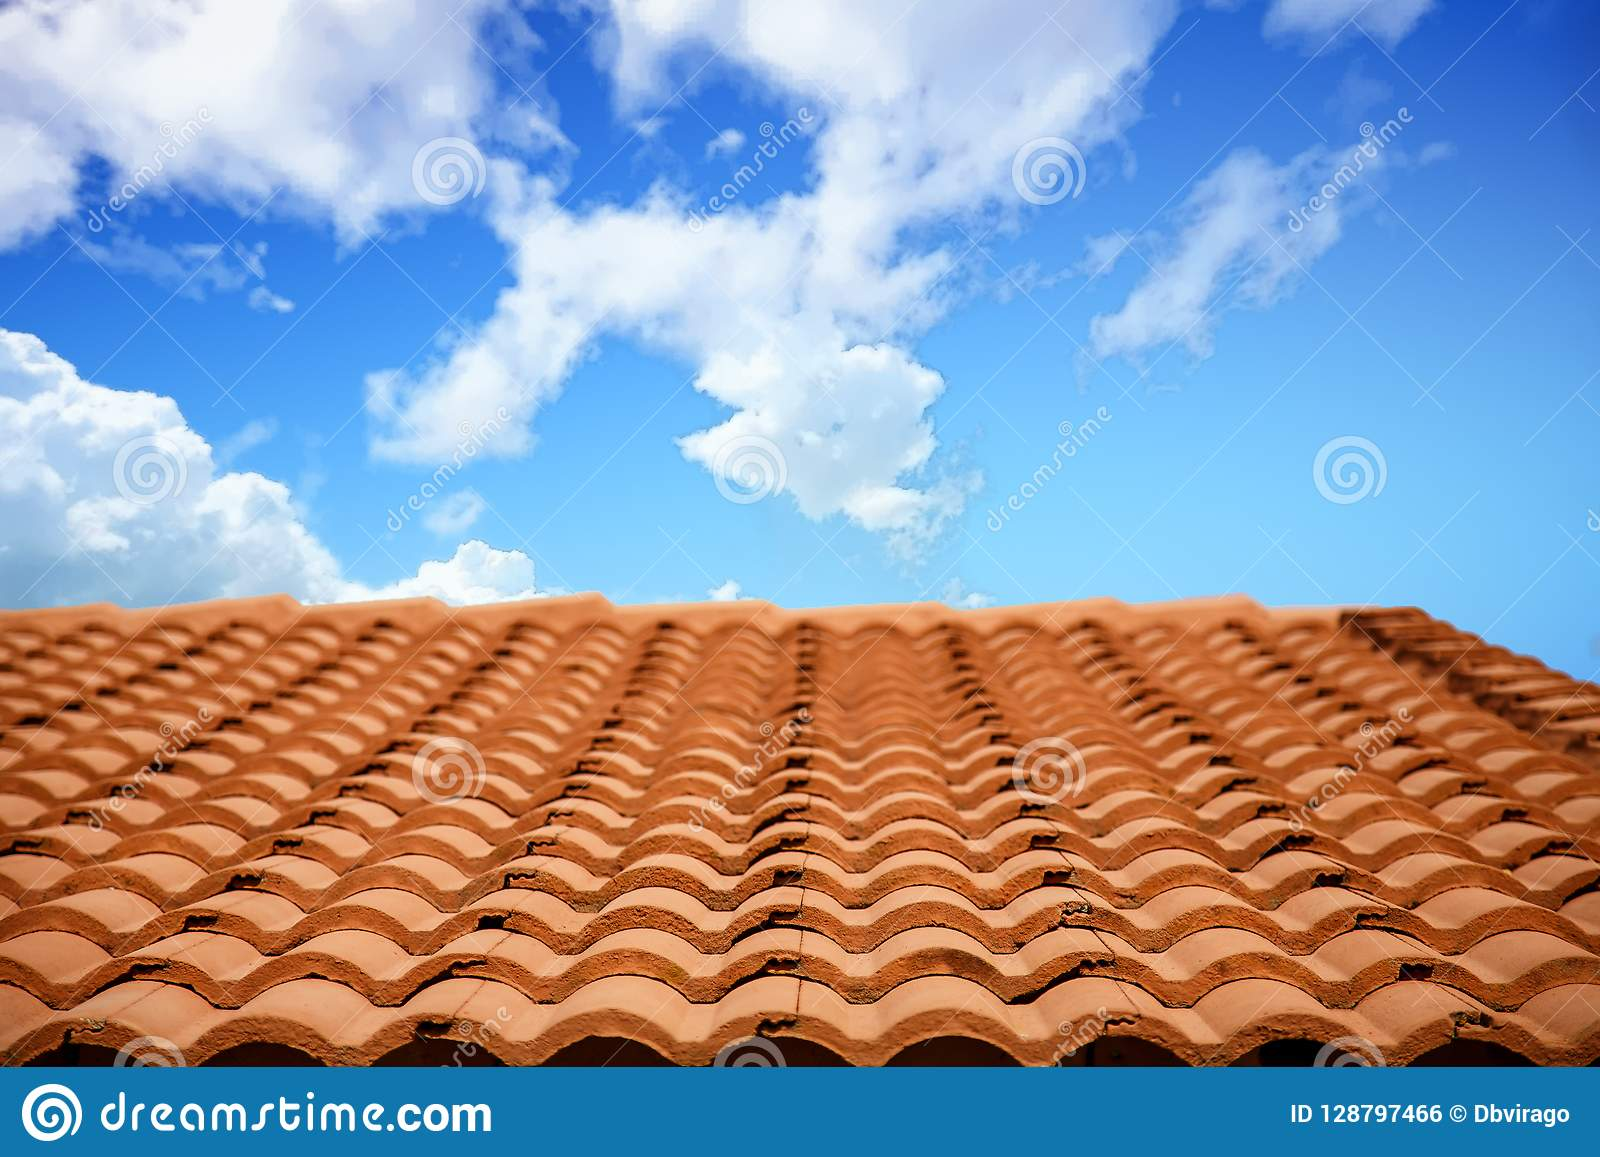 Roof Of Red Clay Tiles Under Cloudy Skies Stock Photo